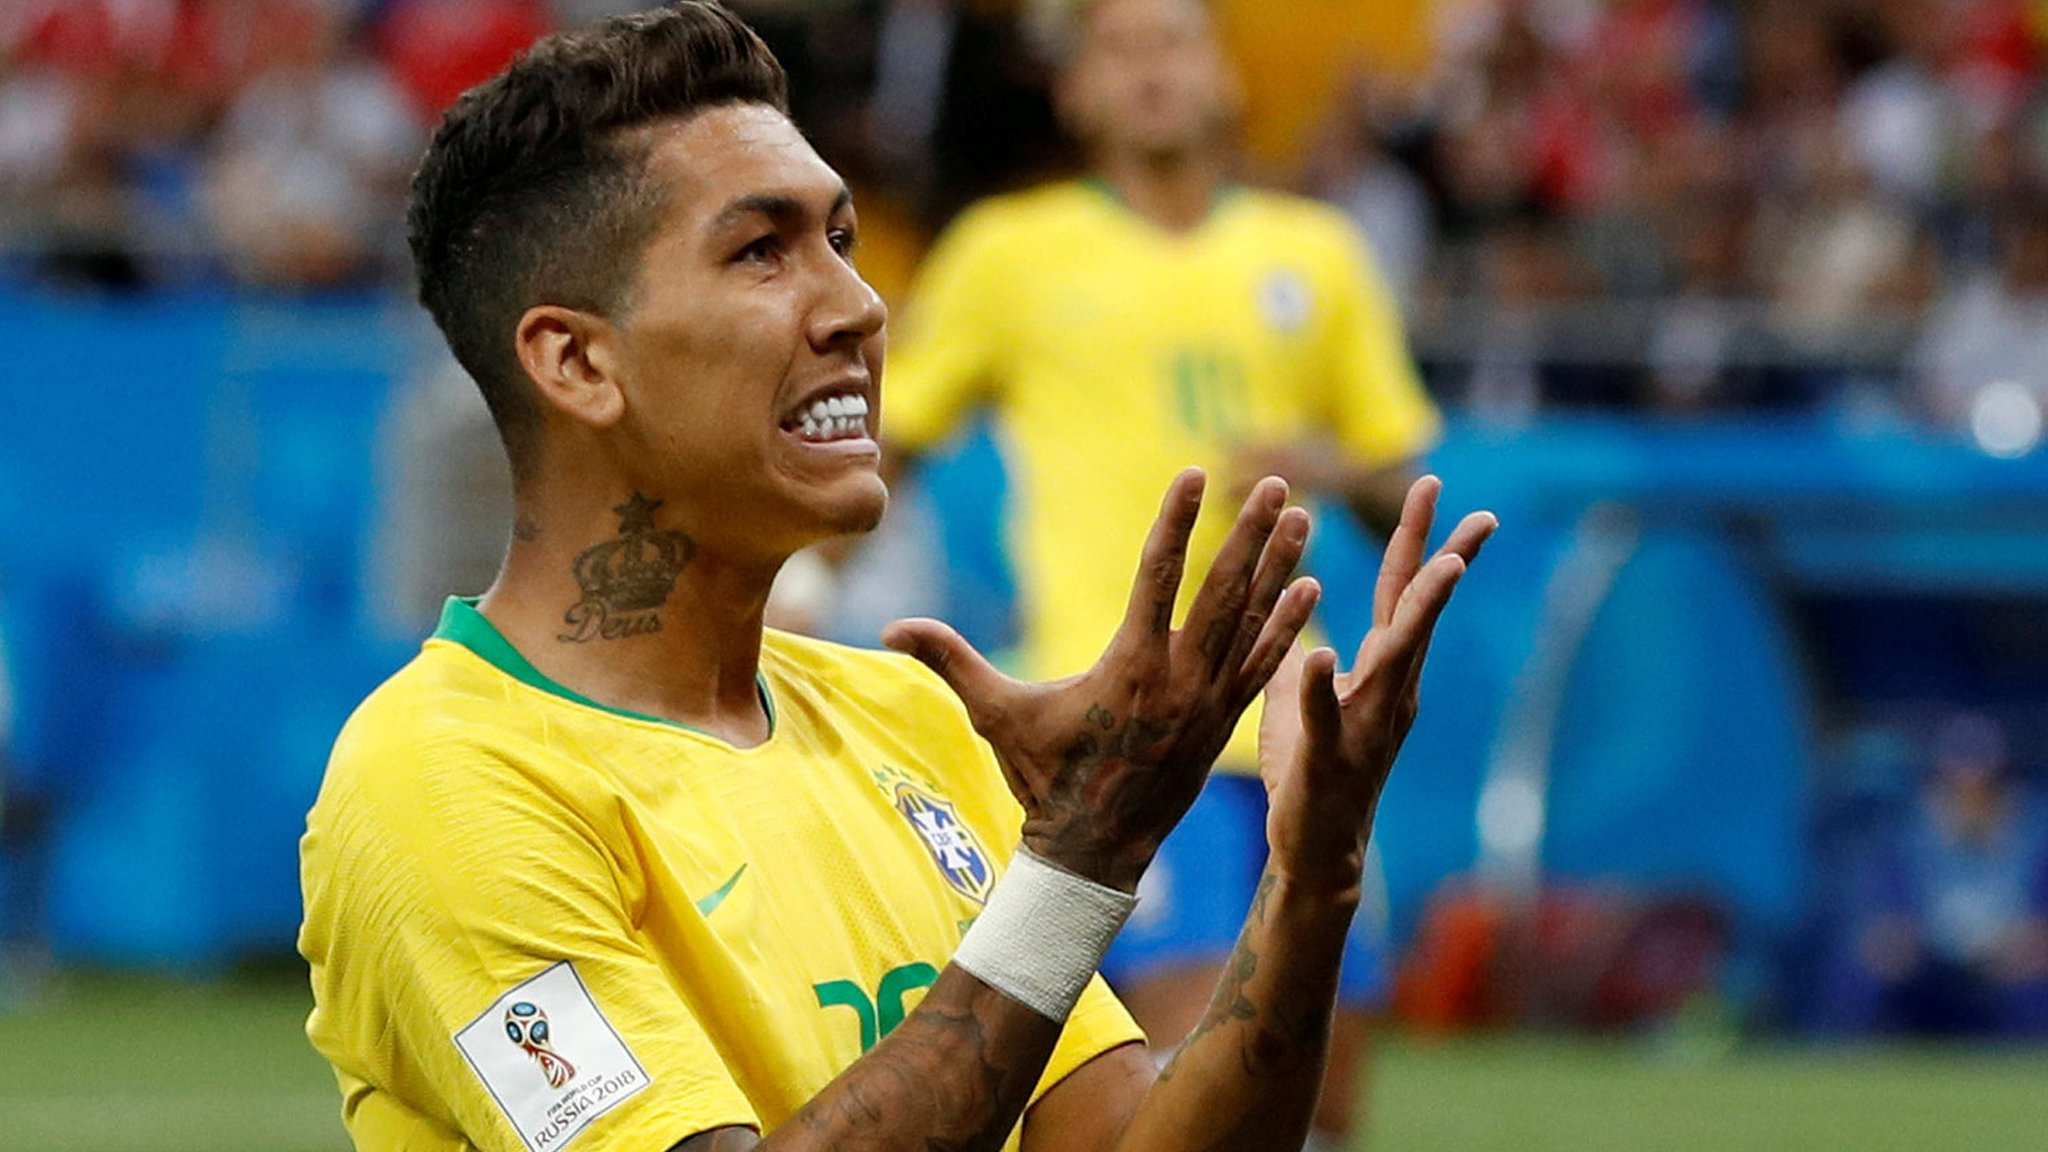 Switzerland hold Brazil after Coutinho stunner - highlights & report